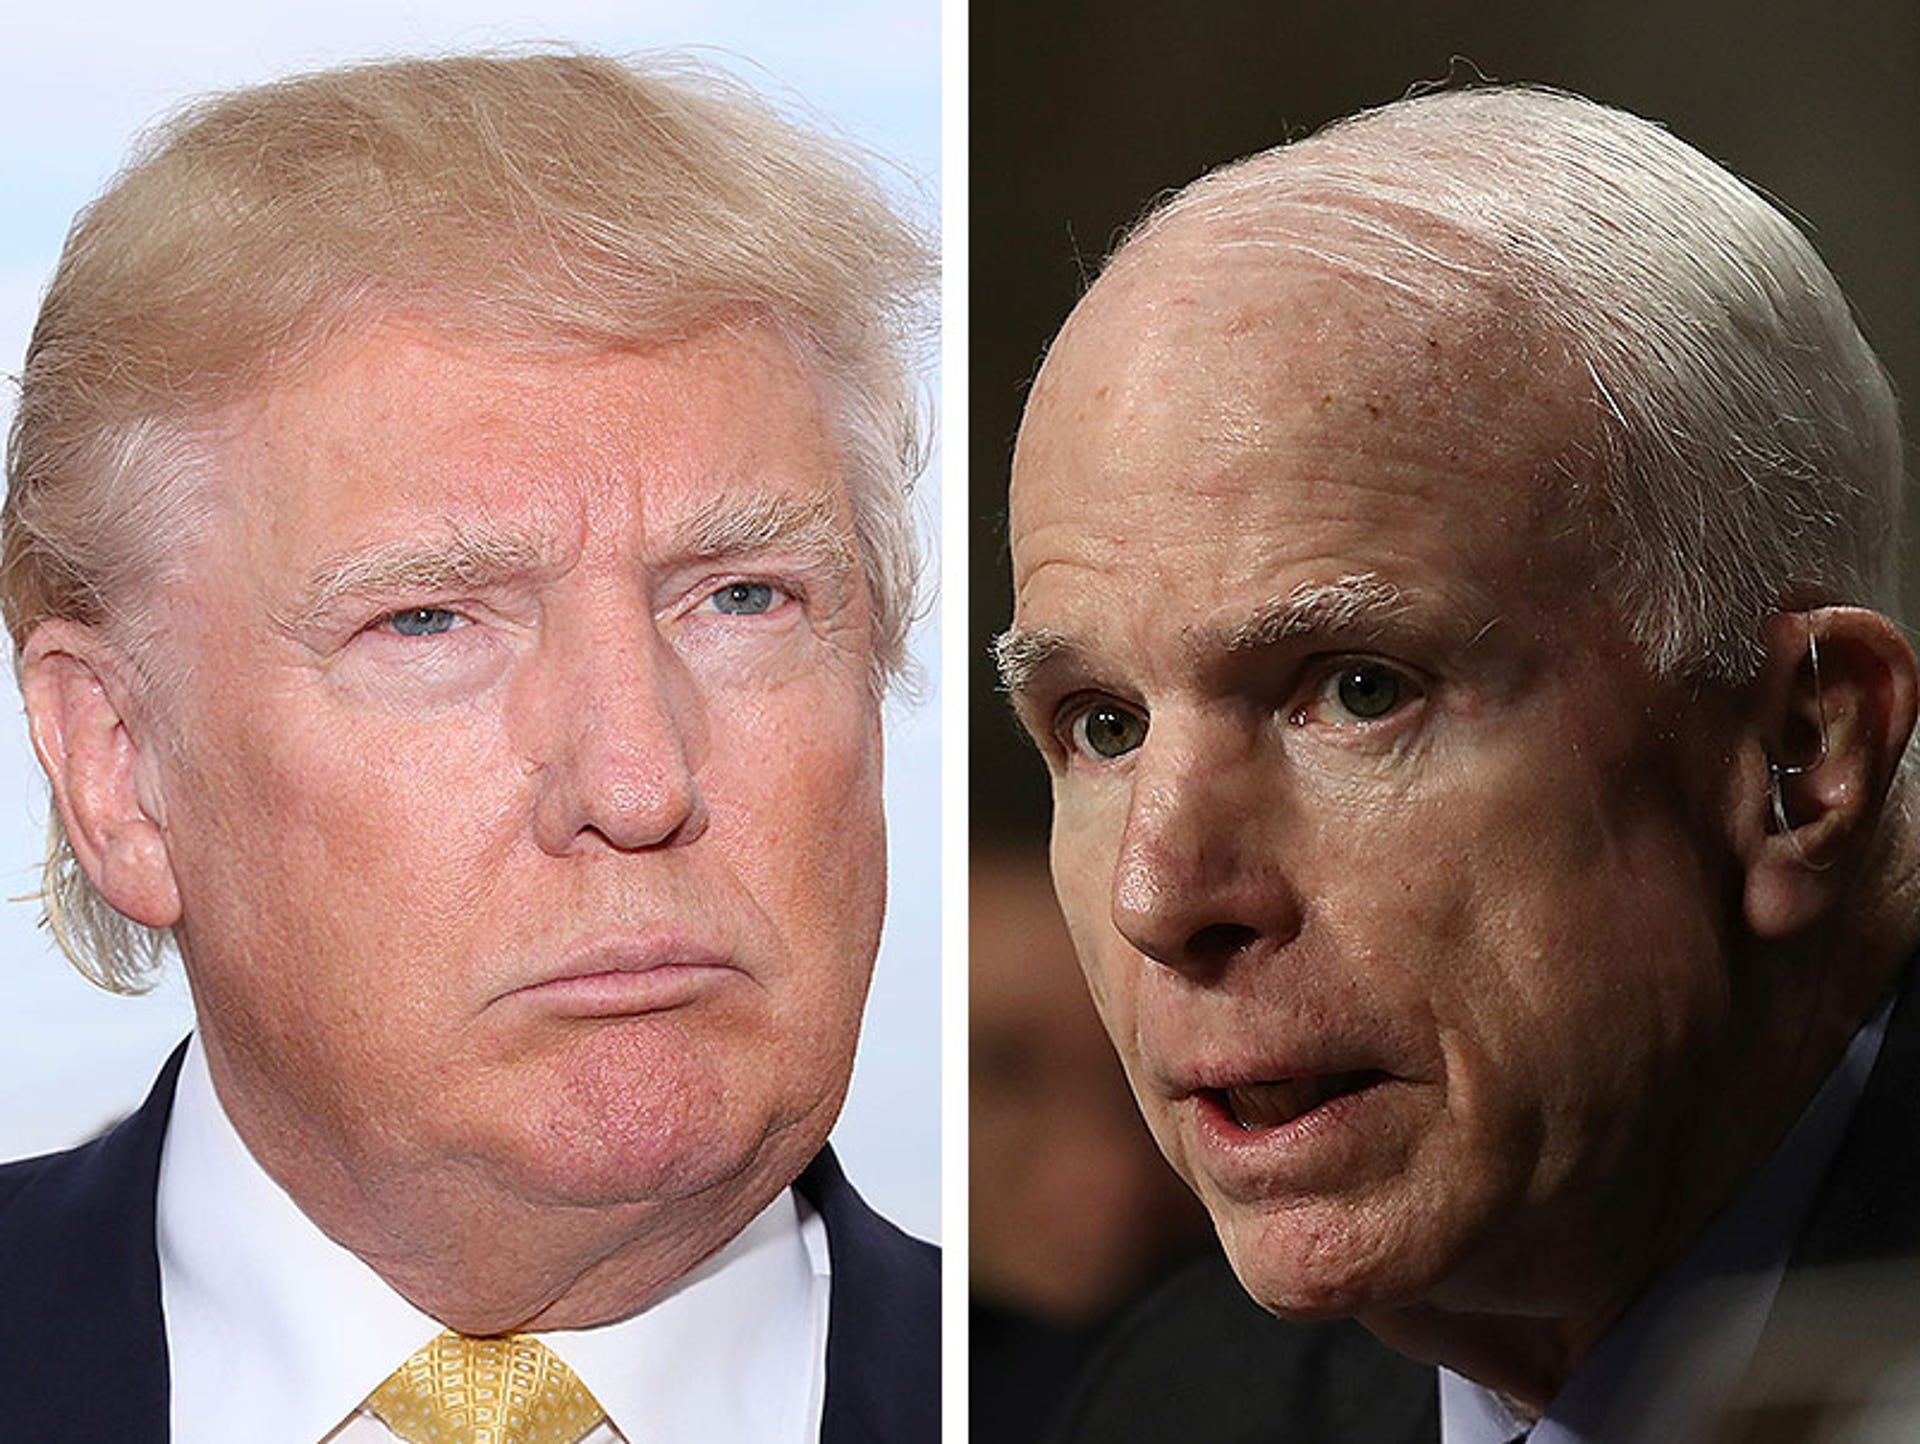 At conference of world leaders, McCain blasts Trump's worldview